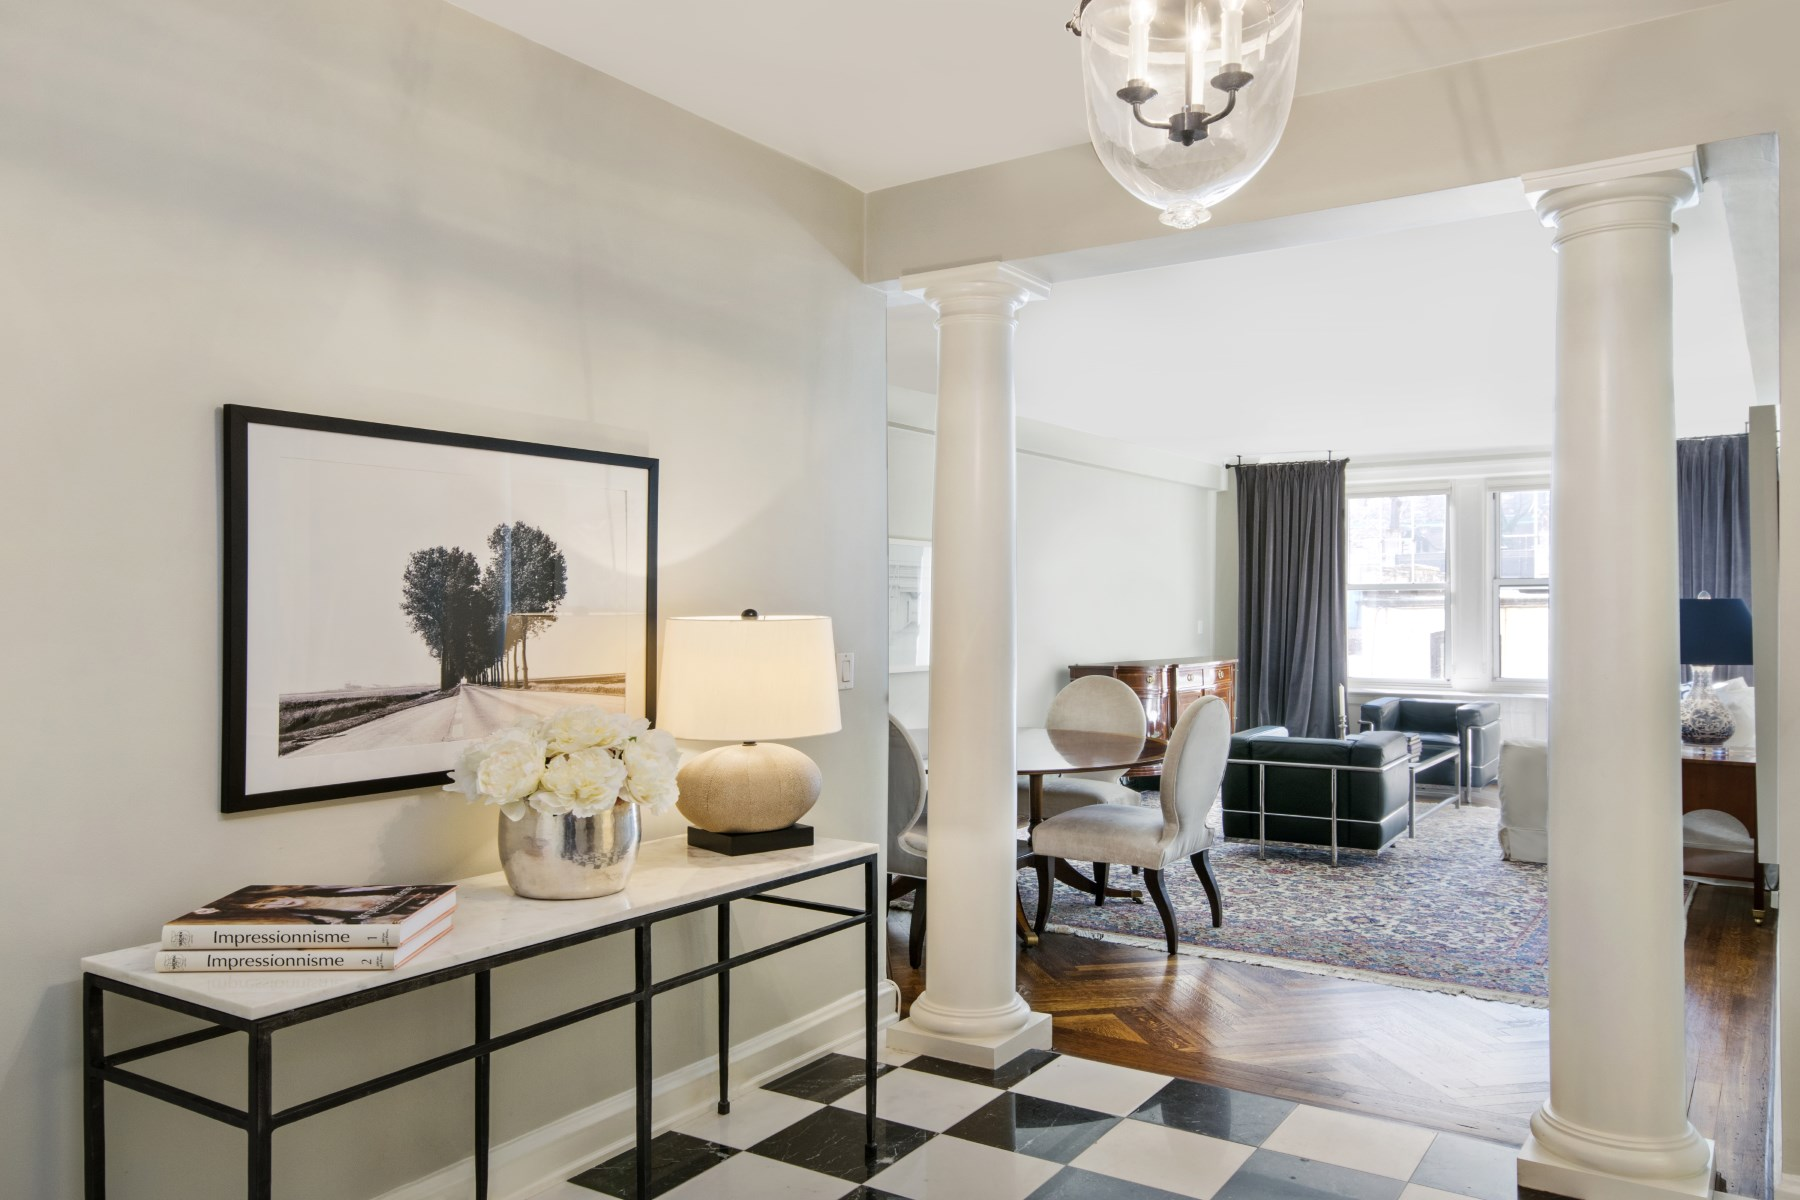 Co-op for Sale at 575 Park Avenue 575 Park Avenue Apt 409 Upper East Side, New York, New York 10065 United States